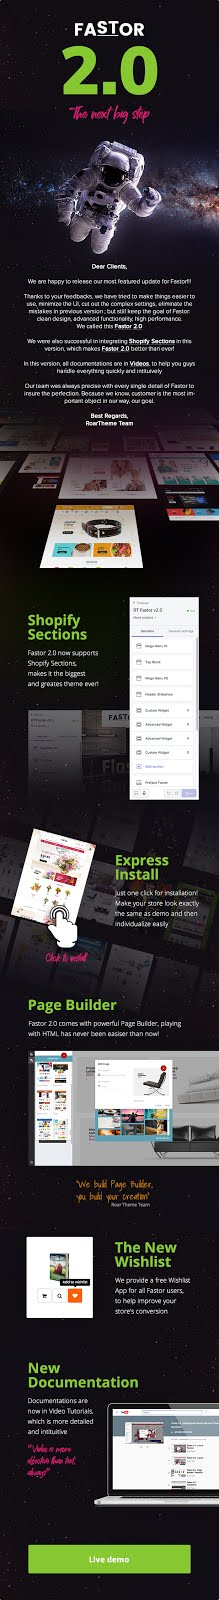 Fastor 2.0 Premium Shopify Theme Nulled - Shopify Booster